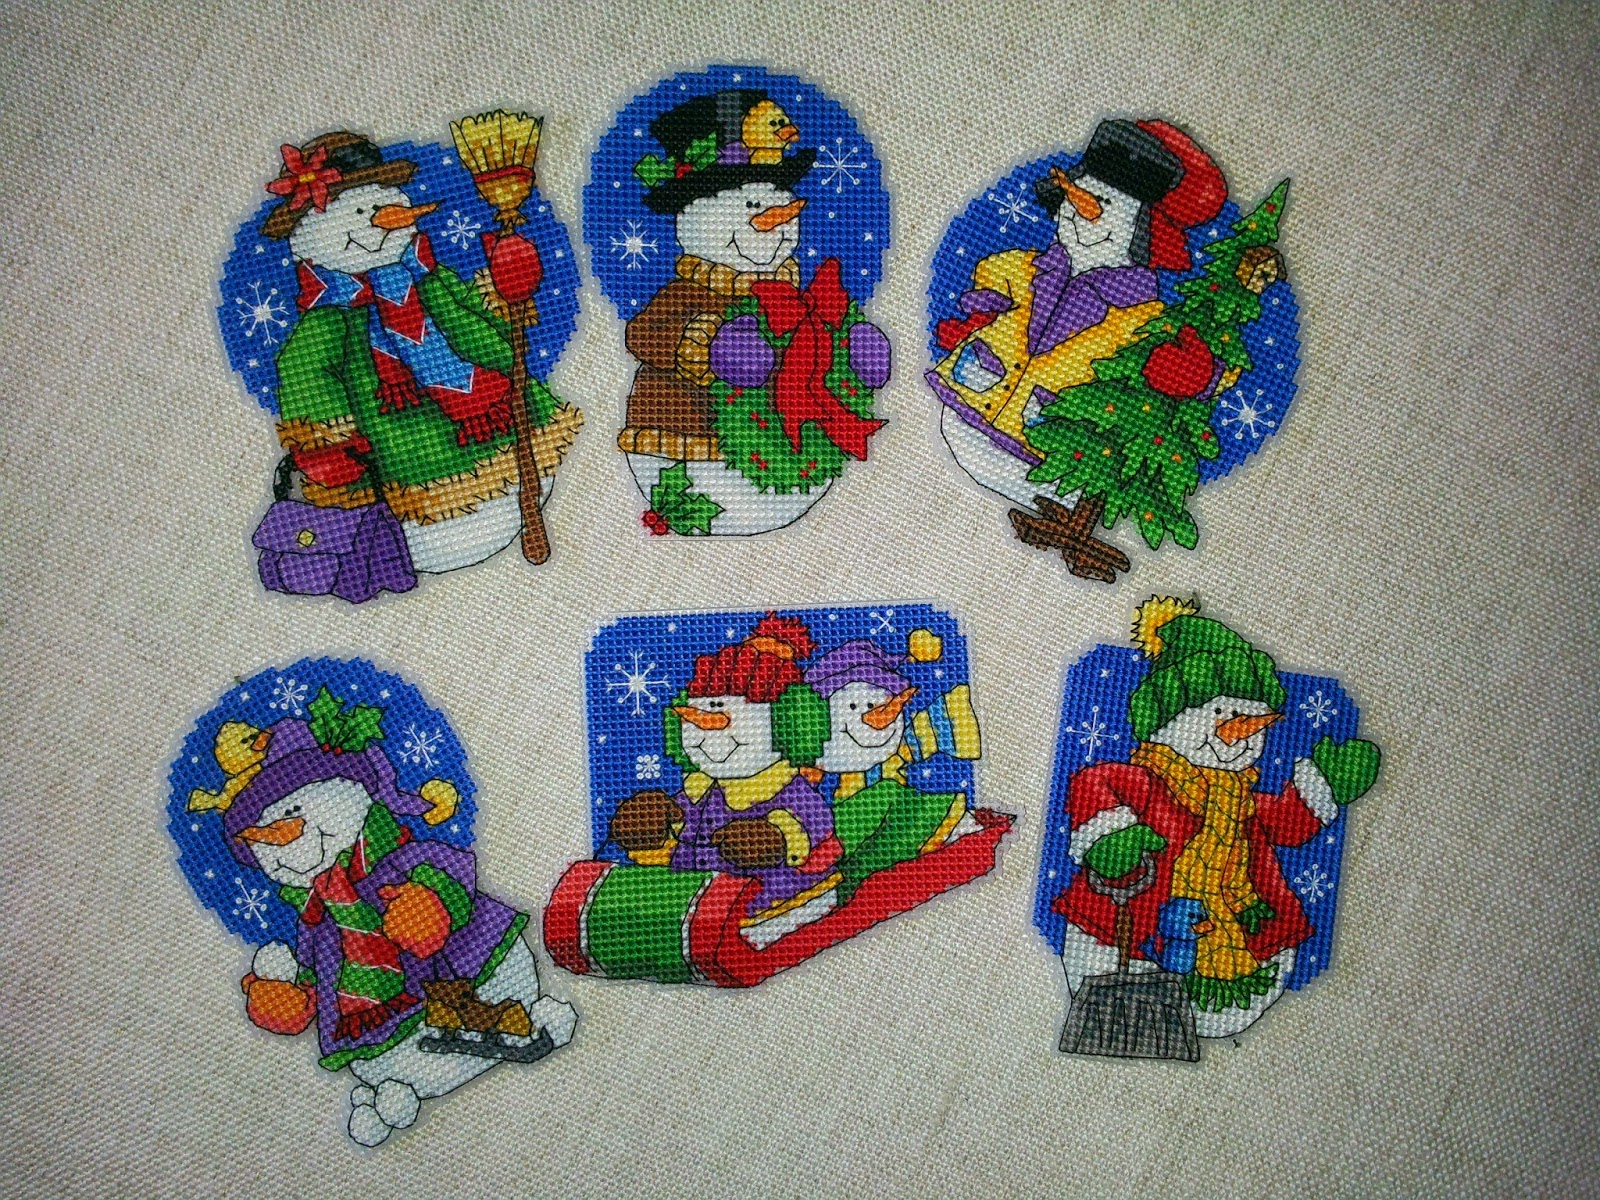 Christmas decorations stitched from 2003 to 2011